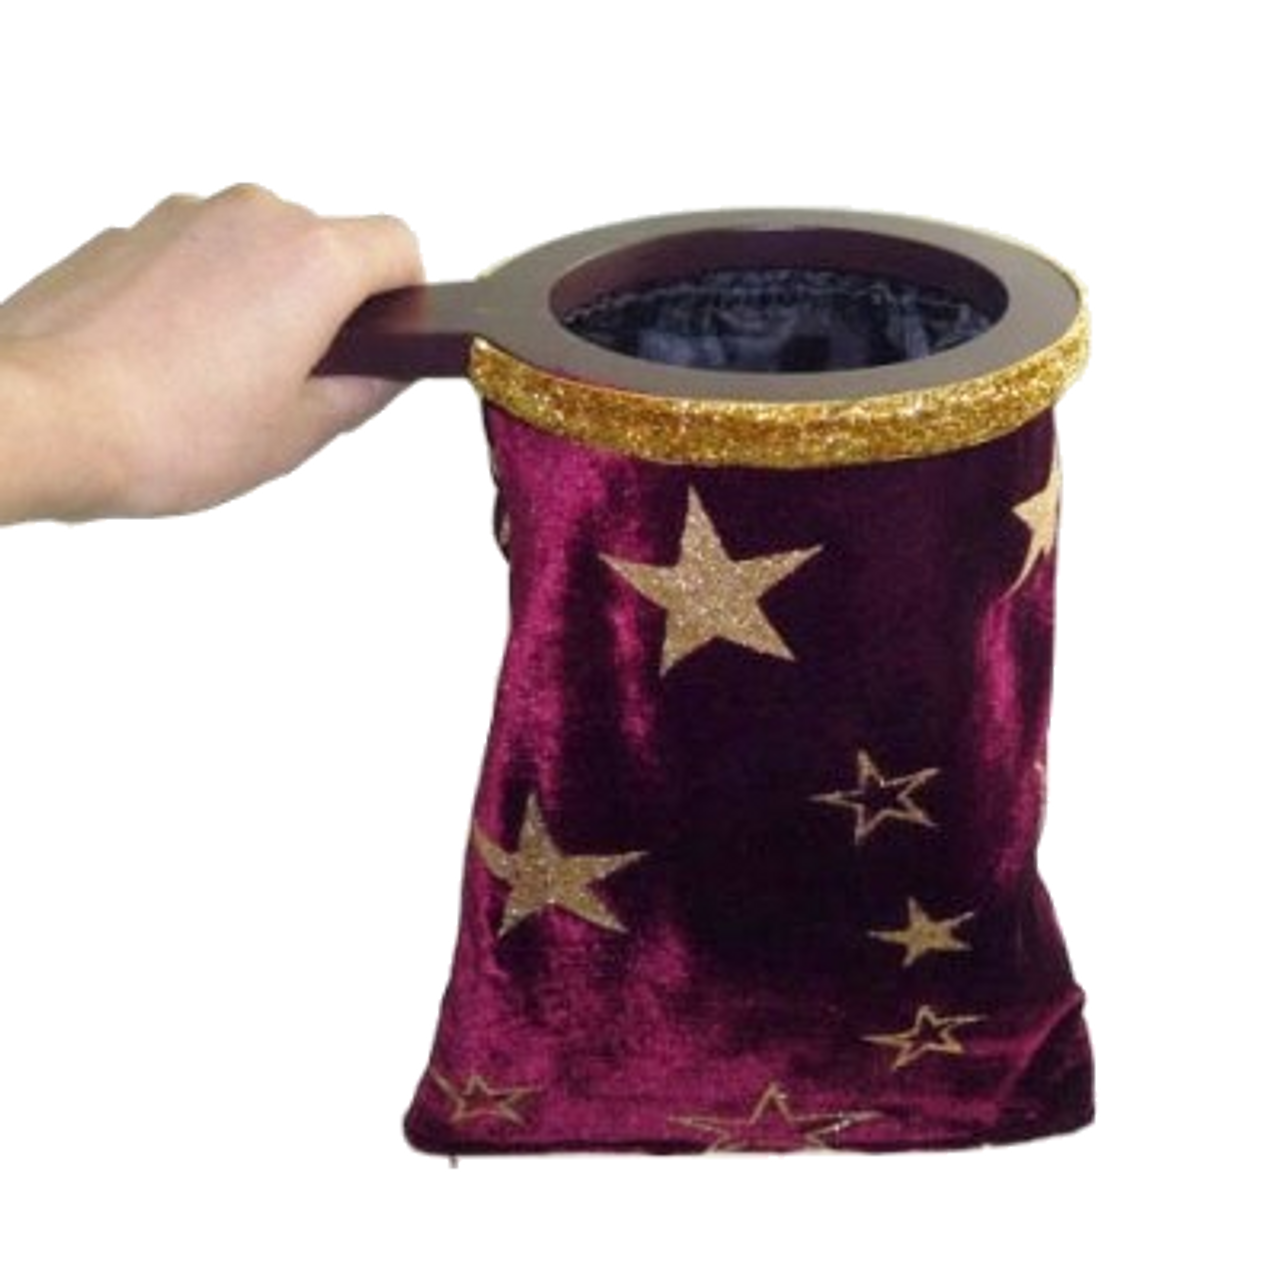 Red burgundy star zipper change bag magic trick Gospel